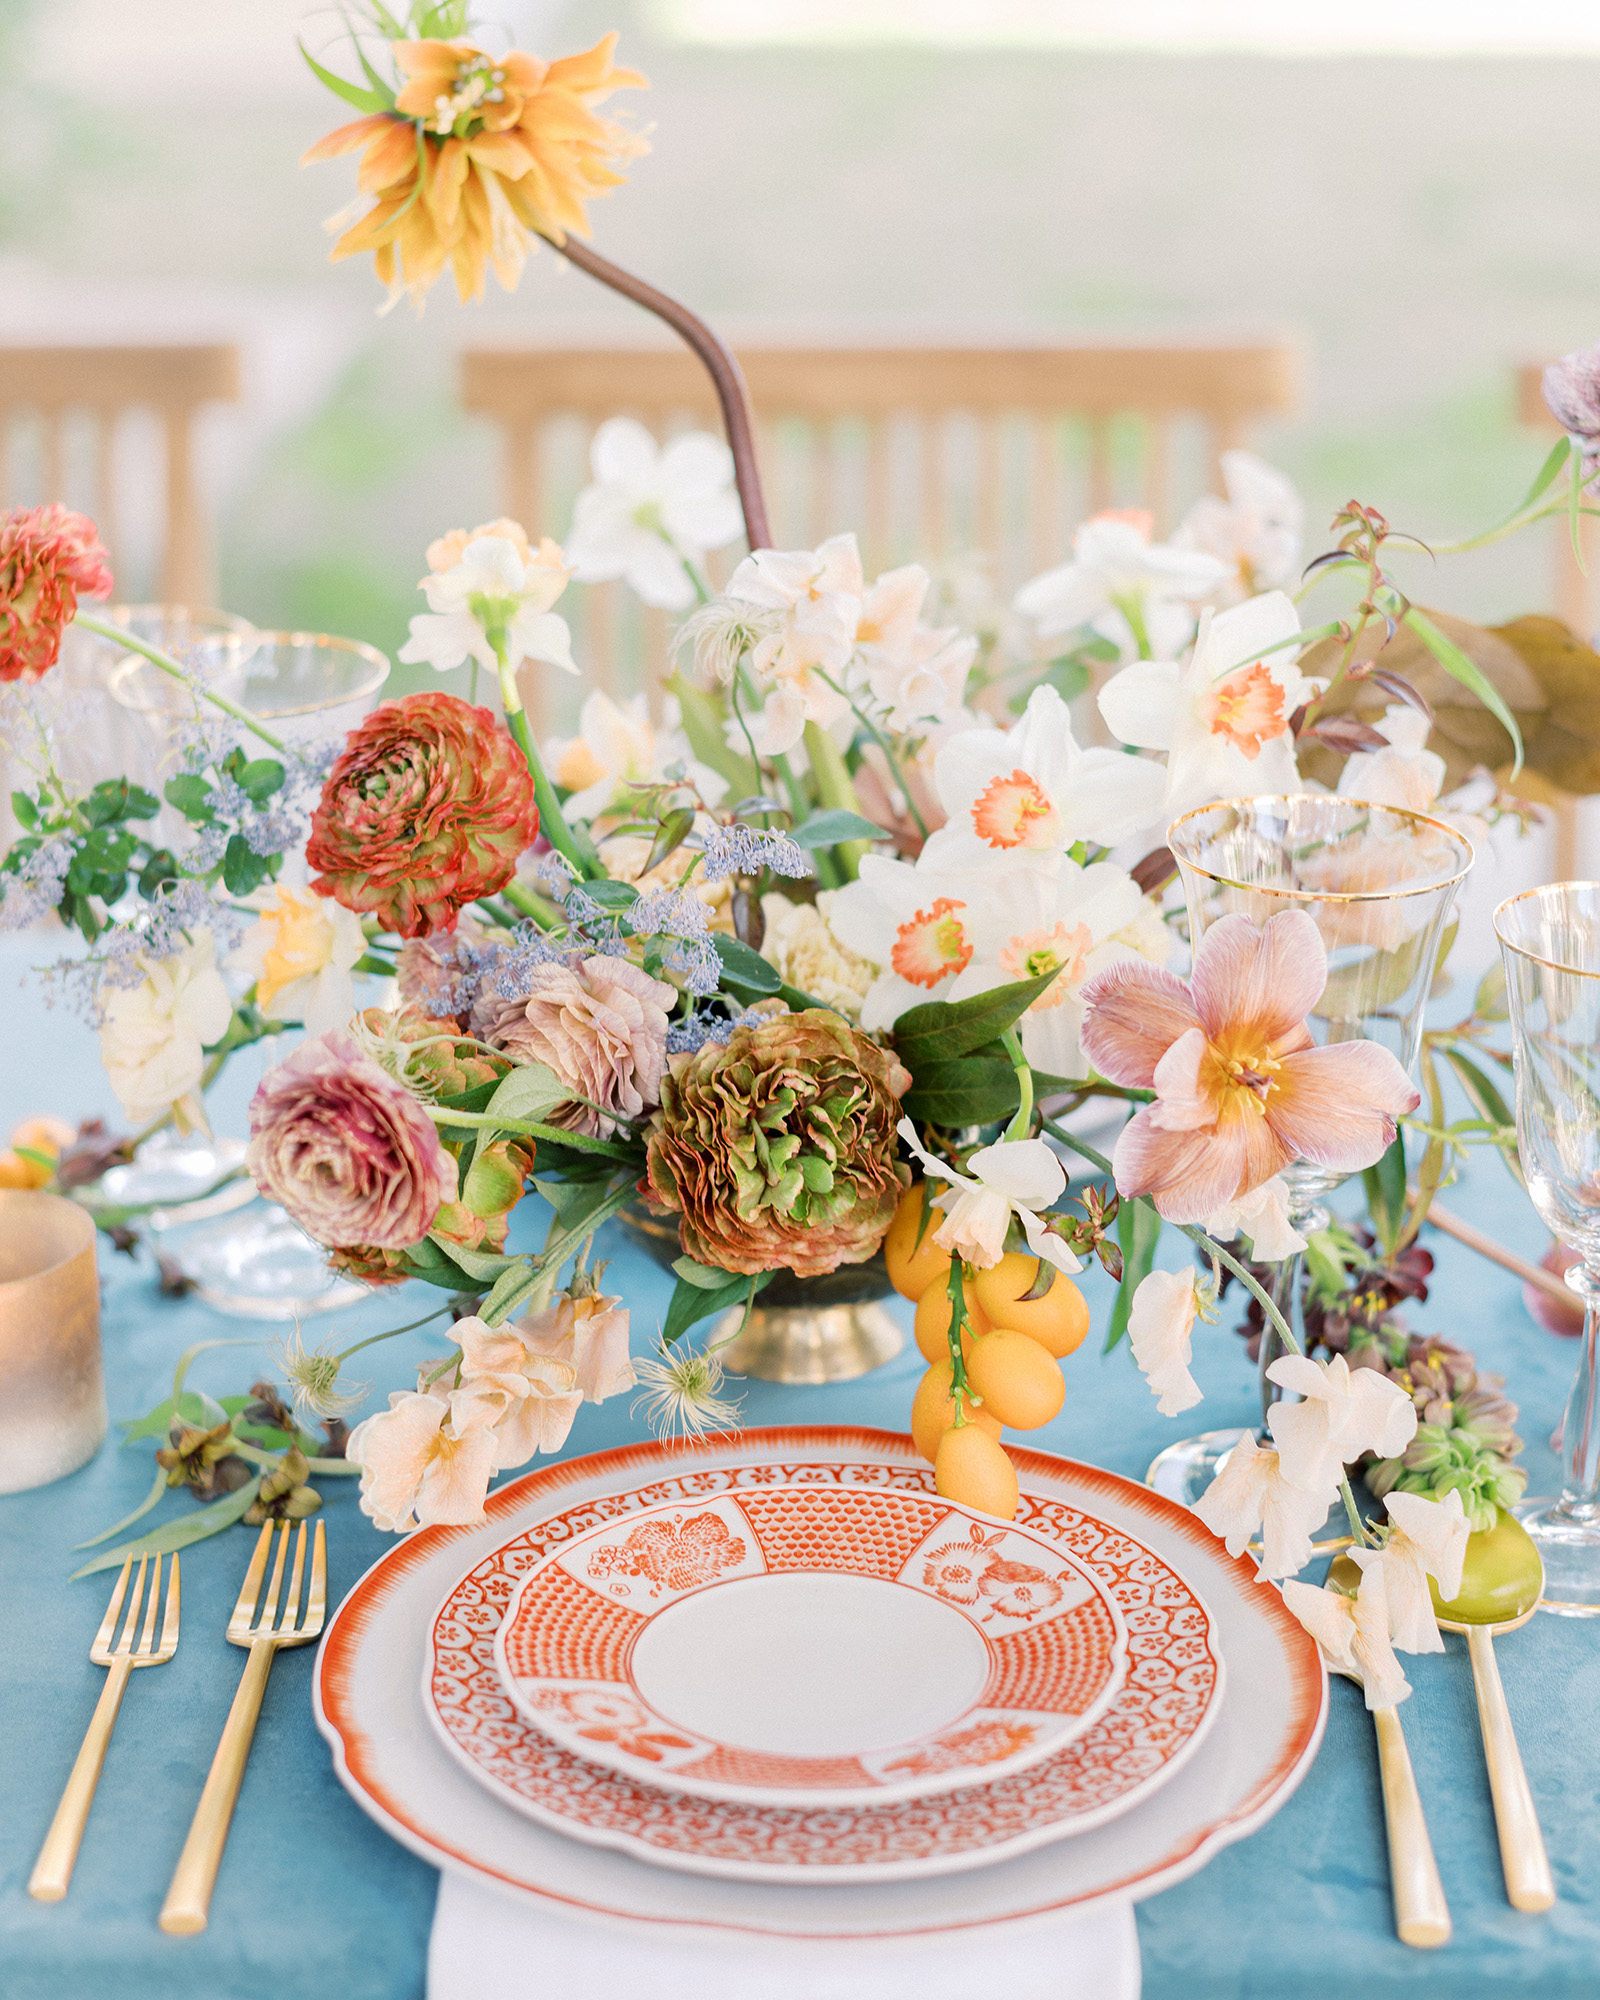 Planning a wedding over the Fourth of July weekend? Reinterpret the holiday's signature red, white, and blue color scheme in a newfangled way for your rehearsal dinner (this is particularly fun if your wedding has a completely different palette). A dusty blue La Tavola tablecloth contrasted the vintage red-and-white patterned dinnerware on this Smith + James Events setup; an ultra-colorful centerpiece, which Kelly Lenard filled with orchids, mums, ranunculus, lilies, sweet peas, and kumquats subtly referenced the shades below.